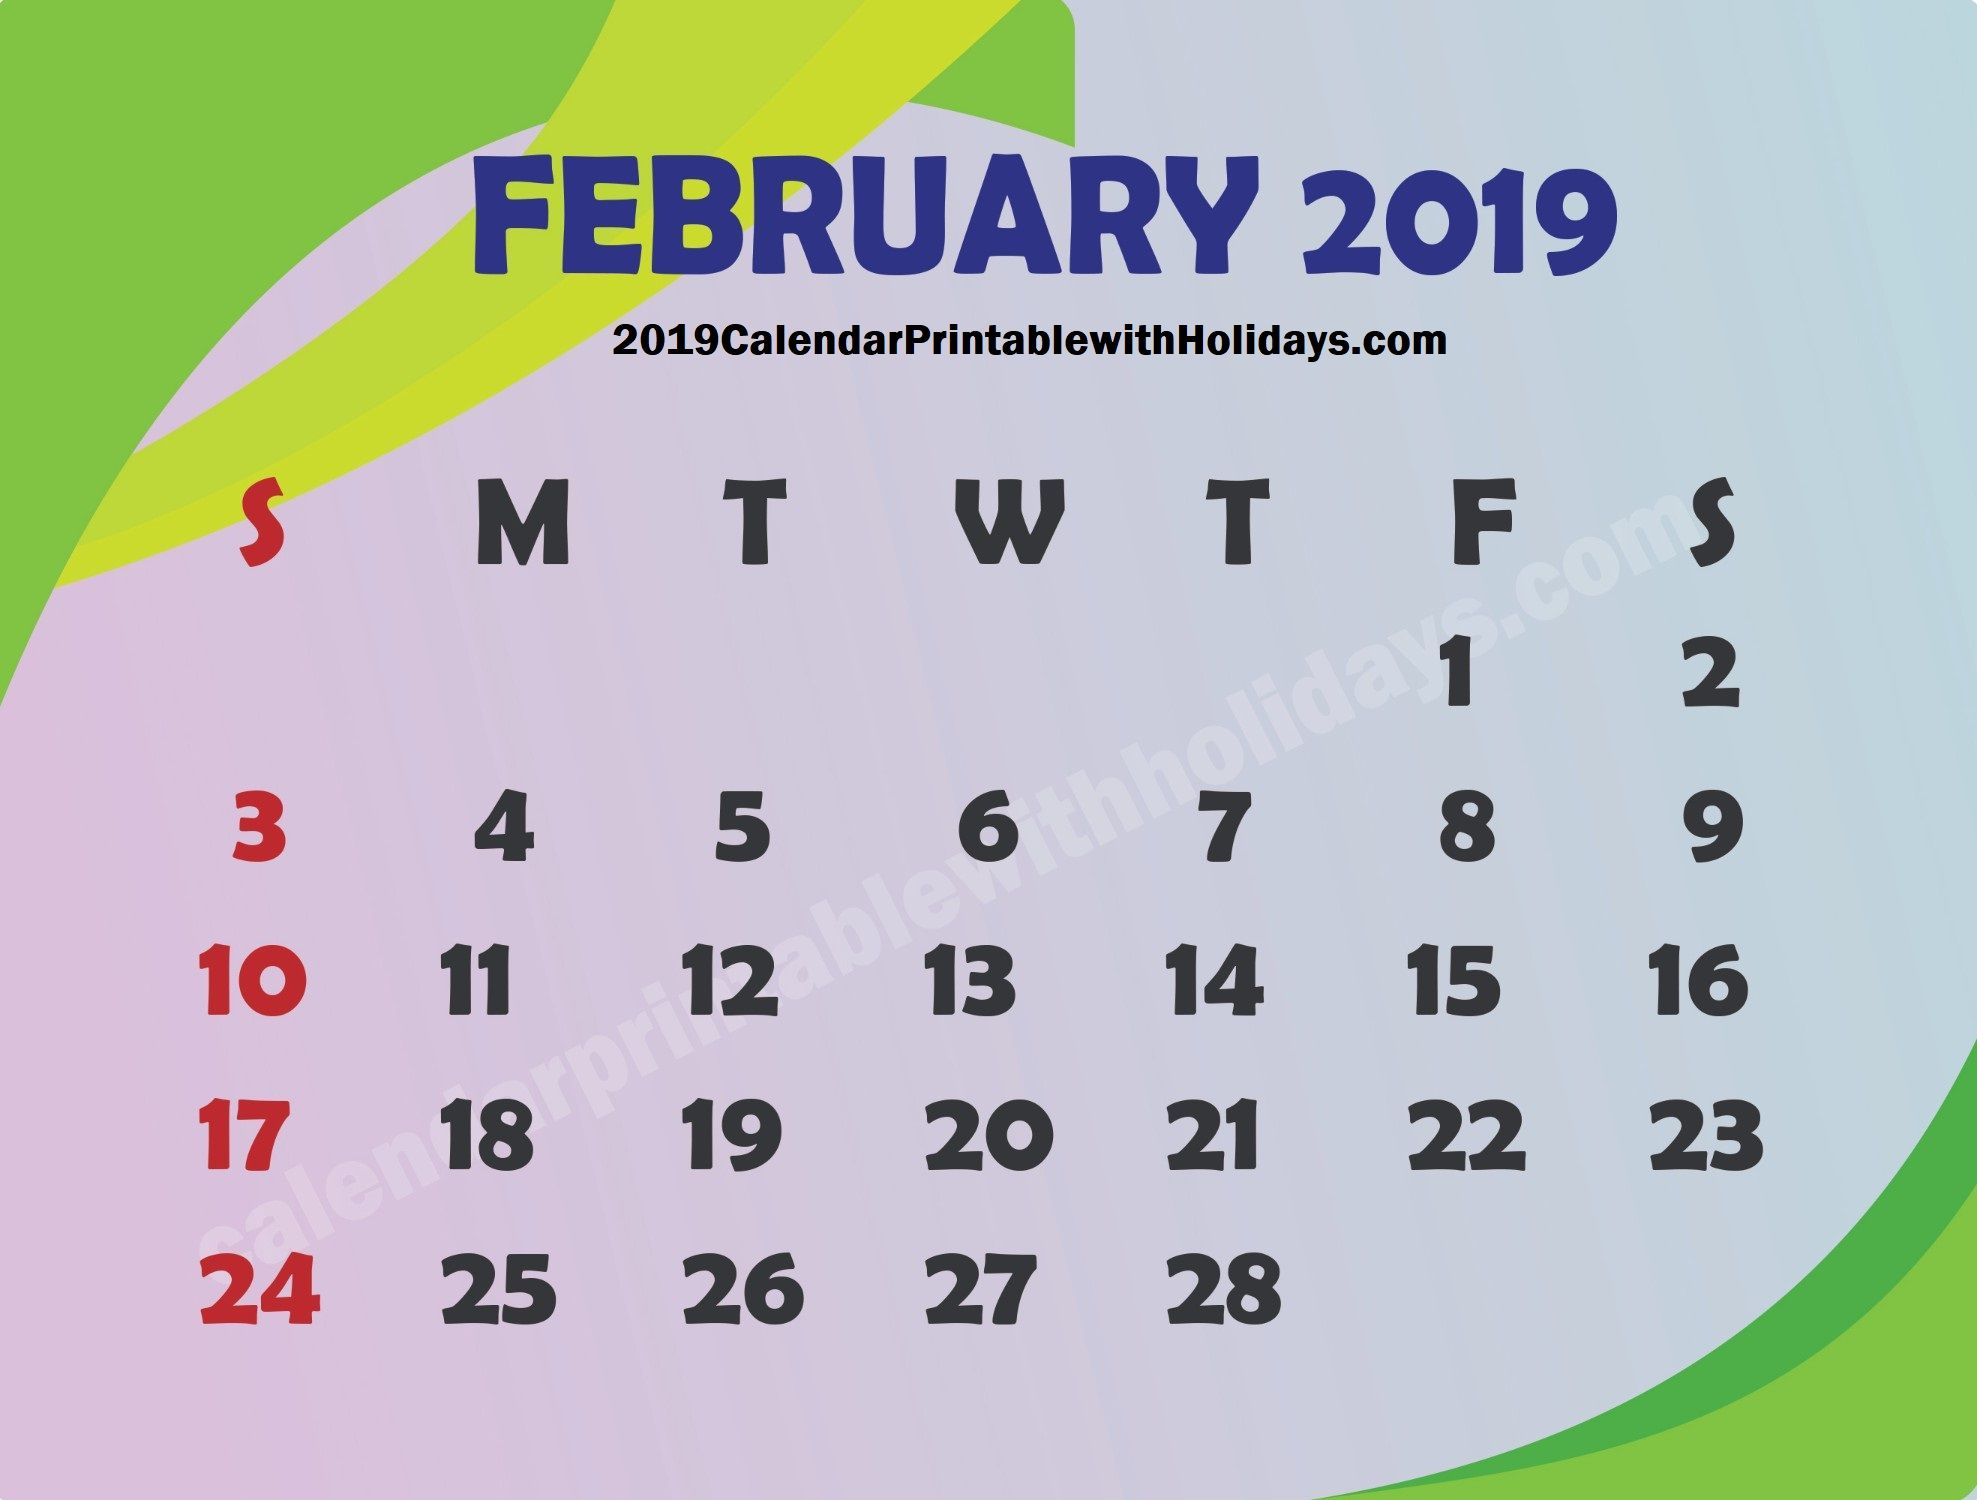 Wcalendar Of Events Dc February 17, 2019 Pin by 2019Calendarprintabletemplate on February 2019 Calendar